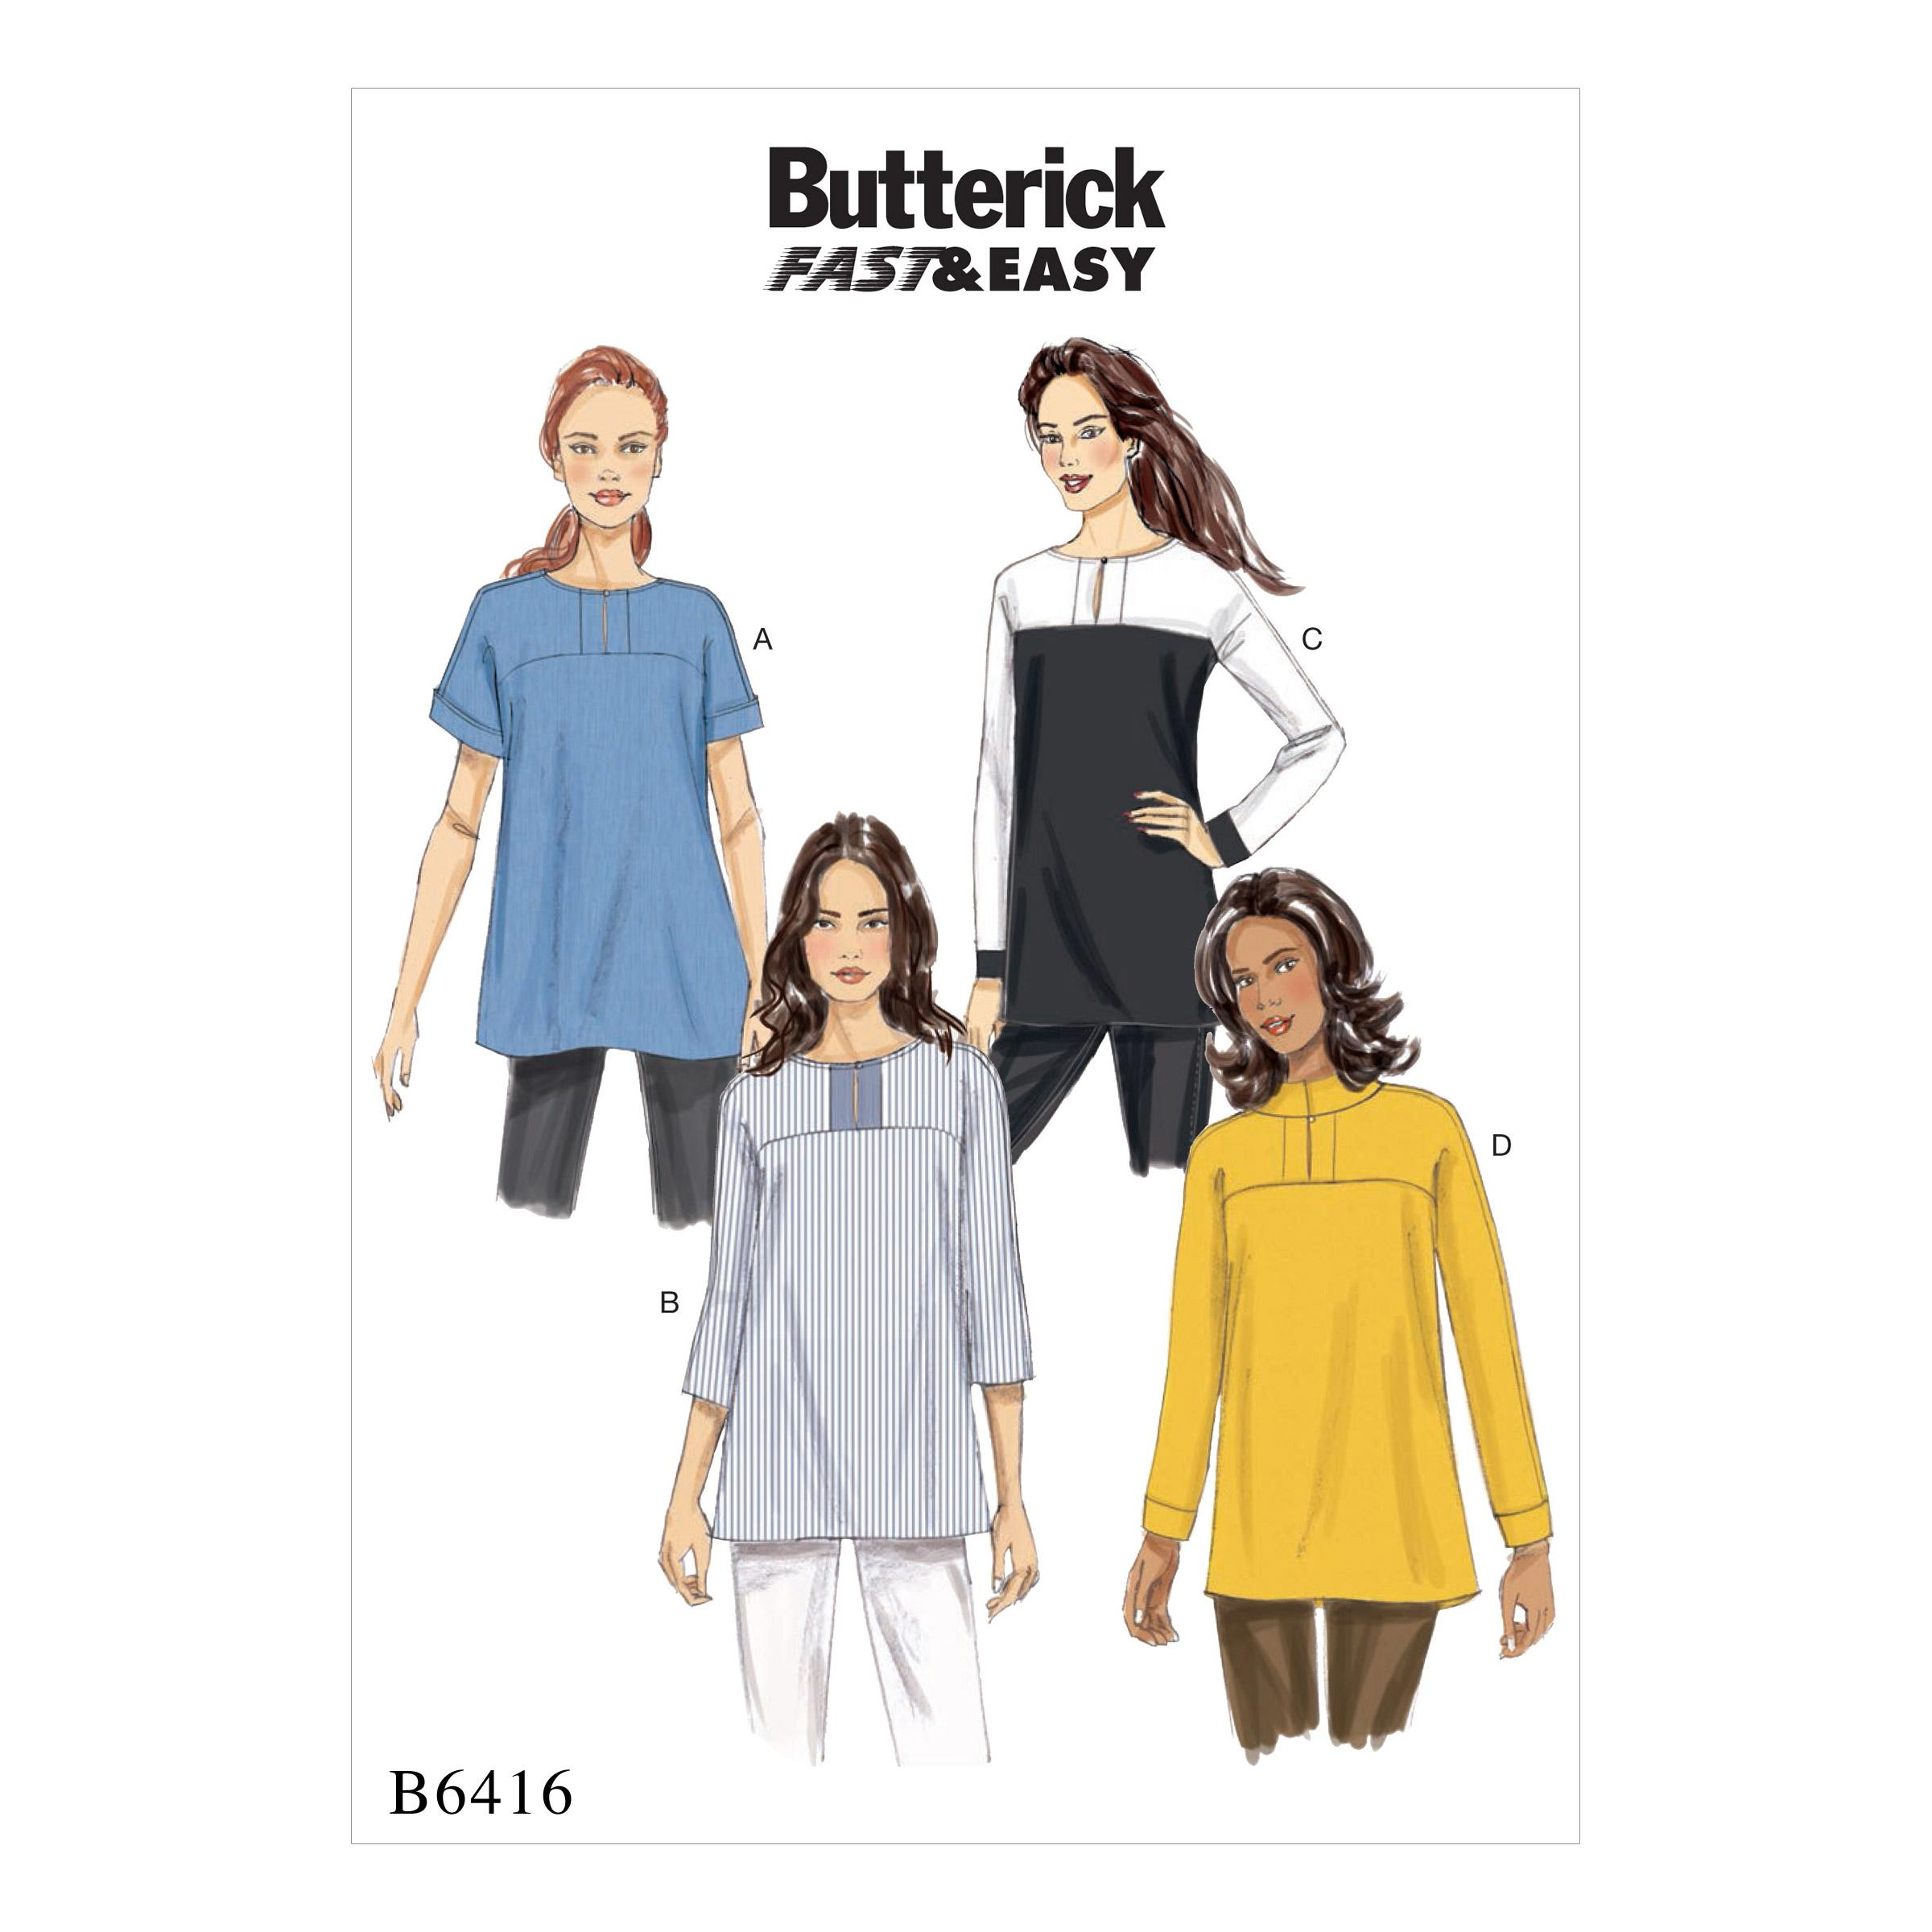 Butterick B6416 Misses' Button-Closure Tunics with Yokes